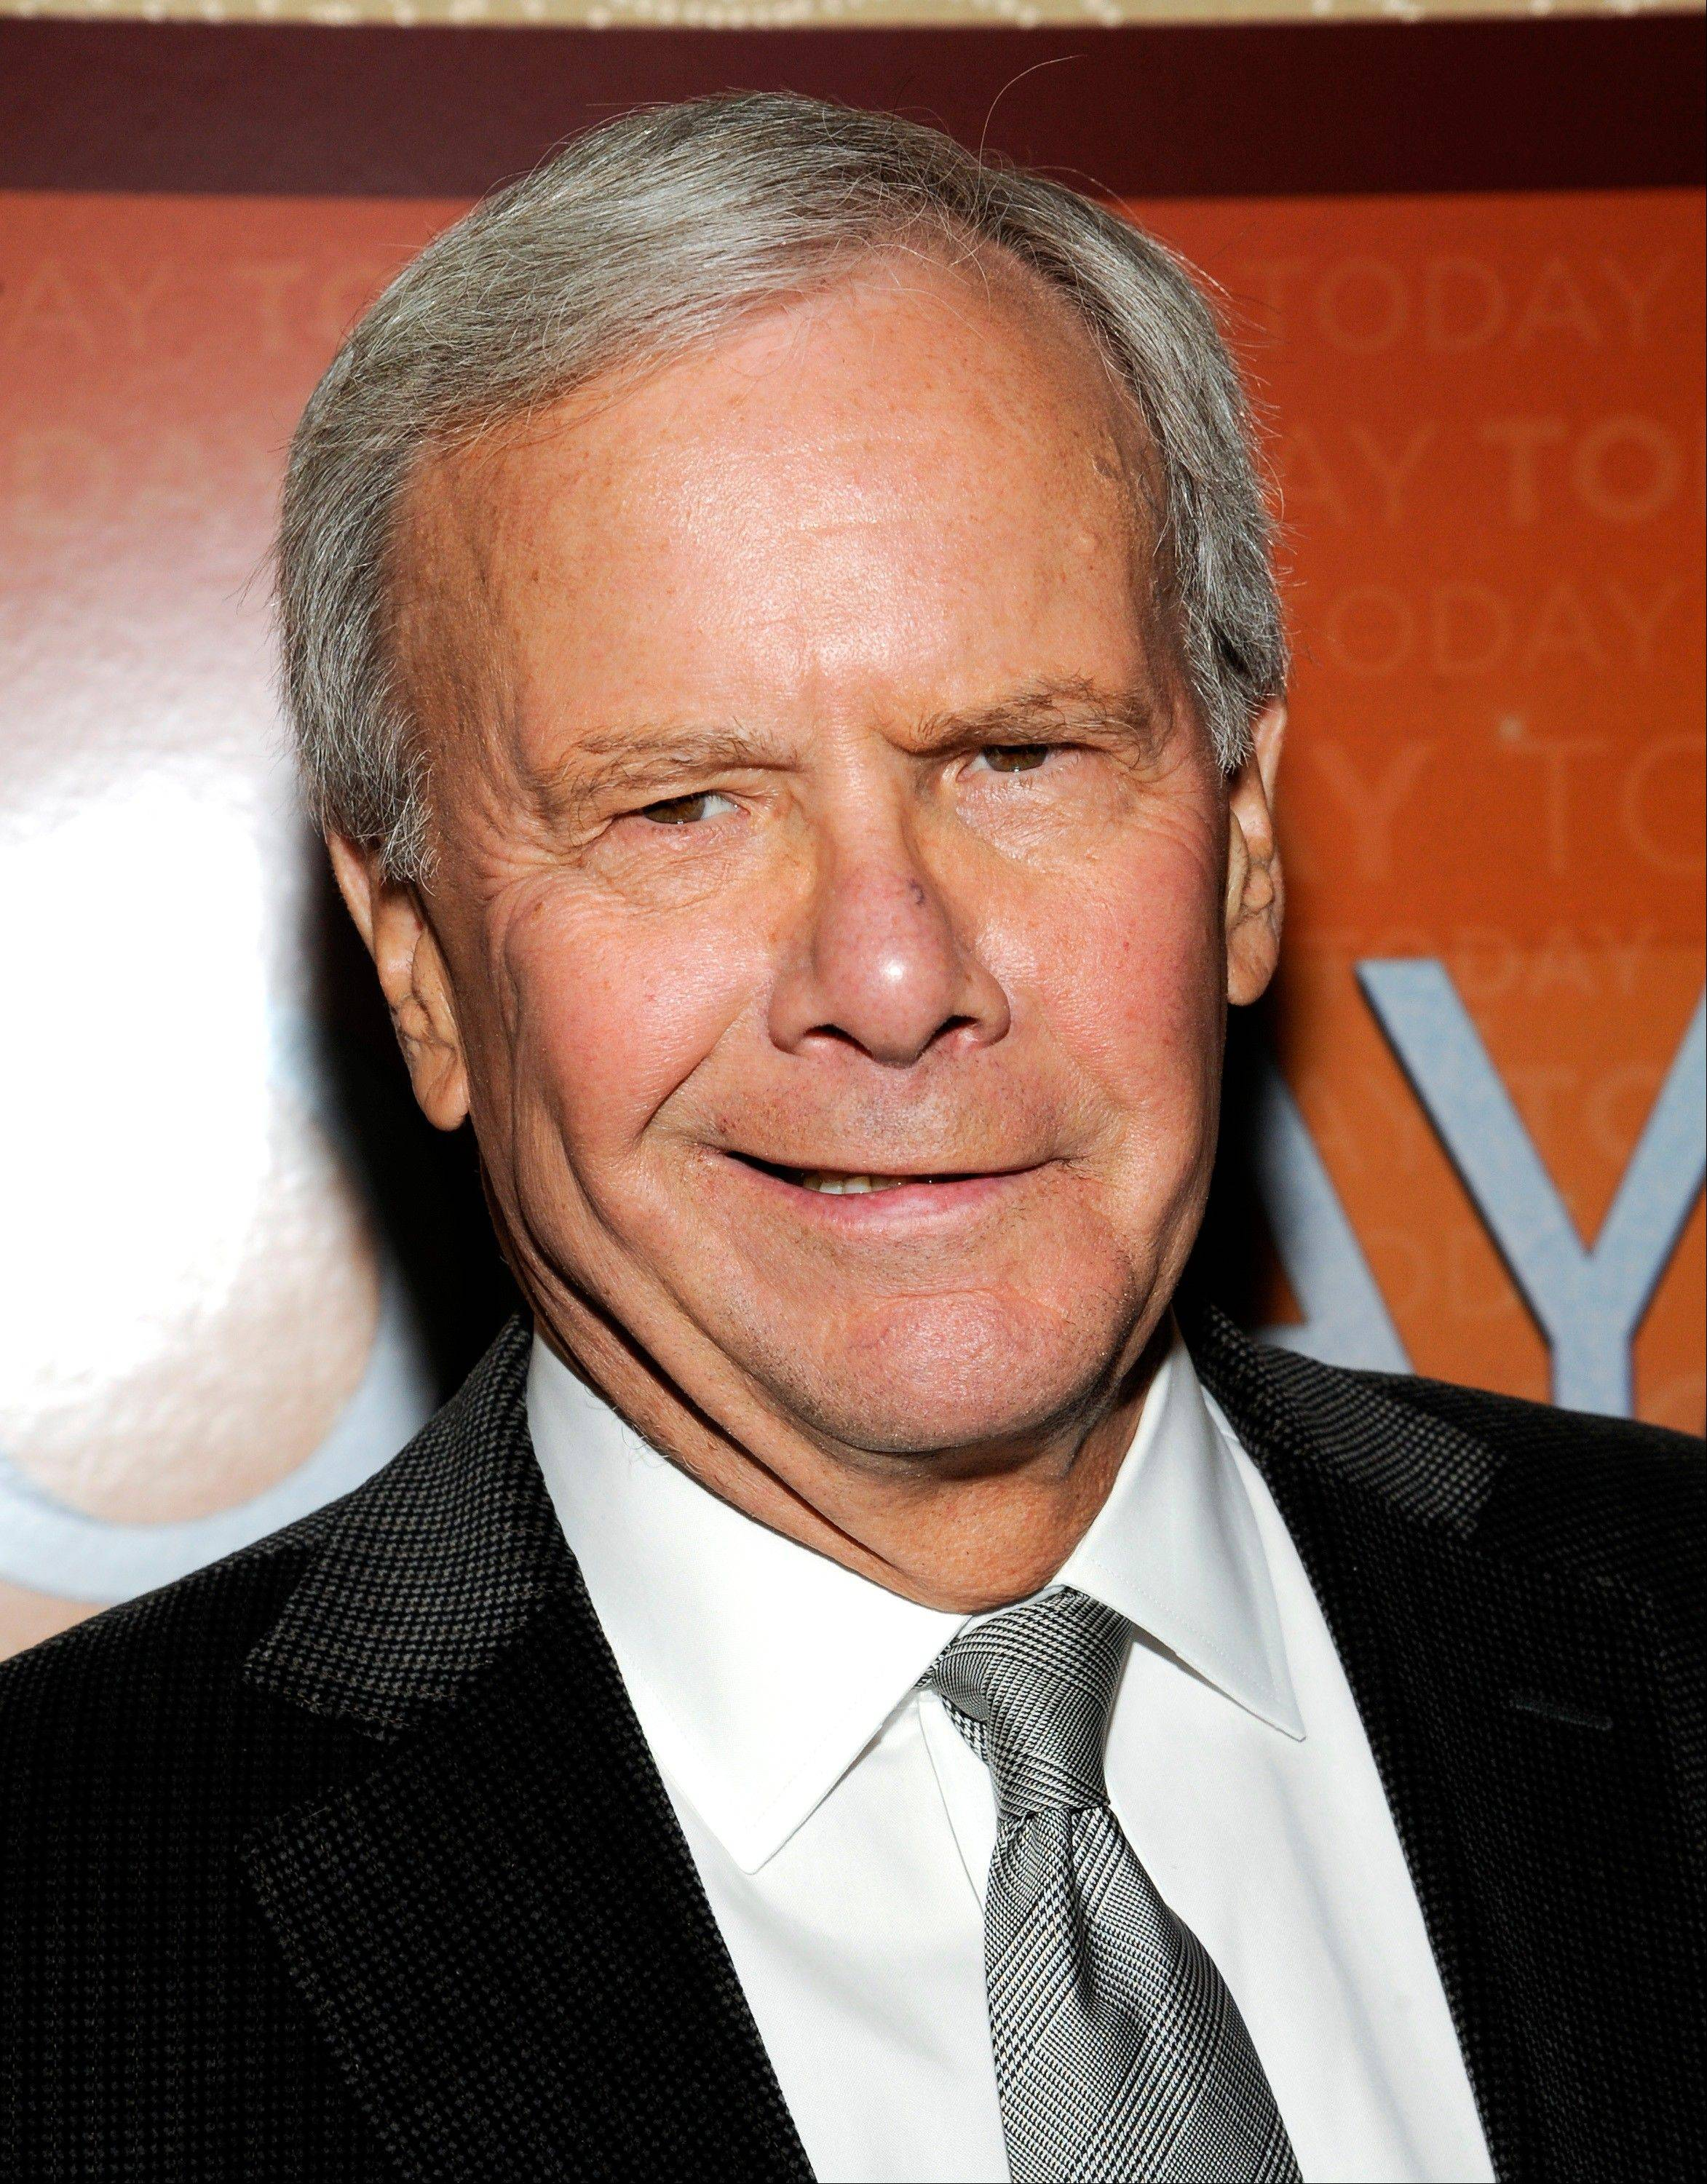 NBC News special correspondent Tom Brokaw was taken to a Charlotte, N.C., hospital Thursday morning after appearing on MSNBC�s �Morning Joe� because he felt �lightheaded� on the set of the news-talk program.